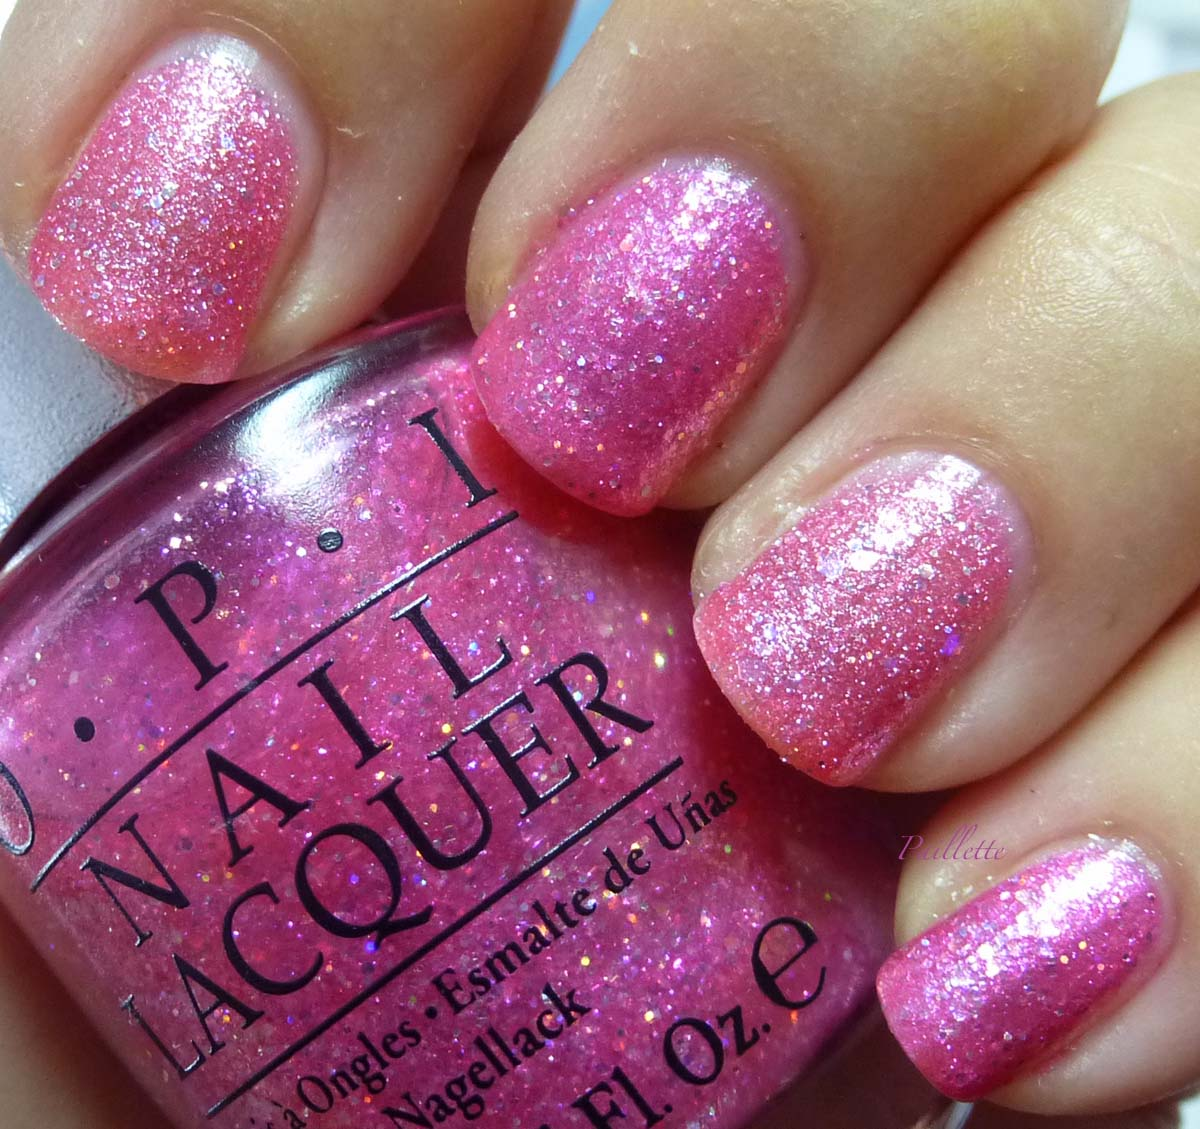 Opi Pink Shimmer Nail Polish: Paillette: A Little Nail Polish Journal: Pink Glitter